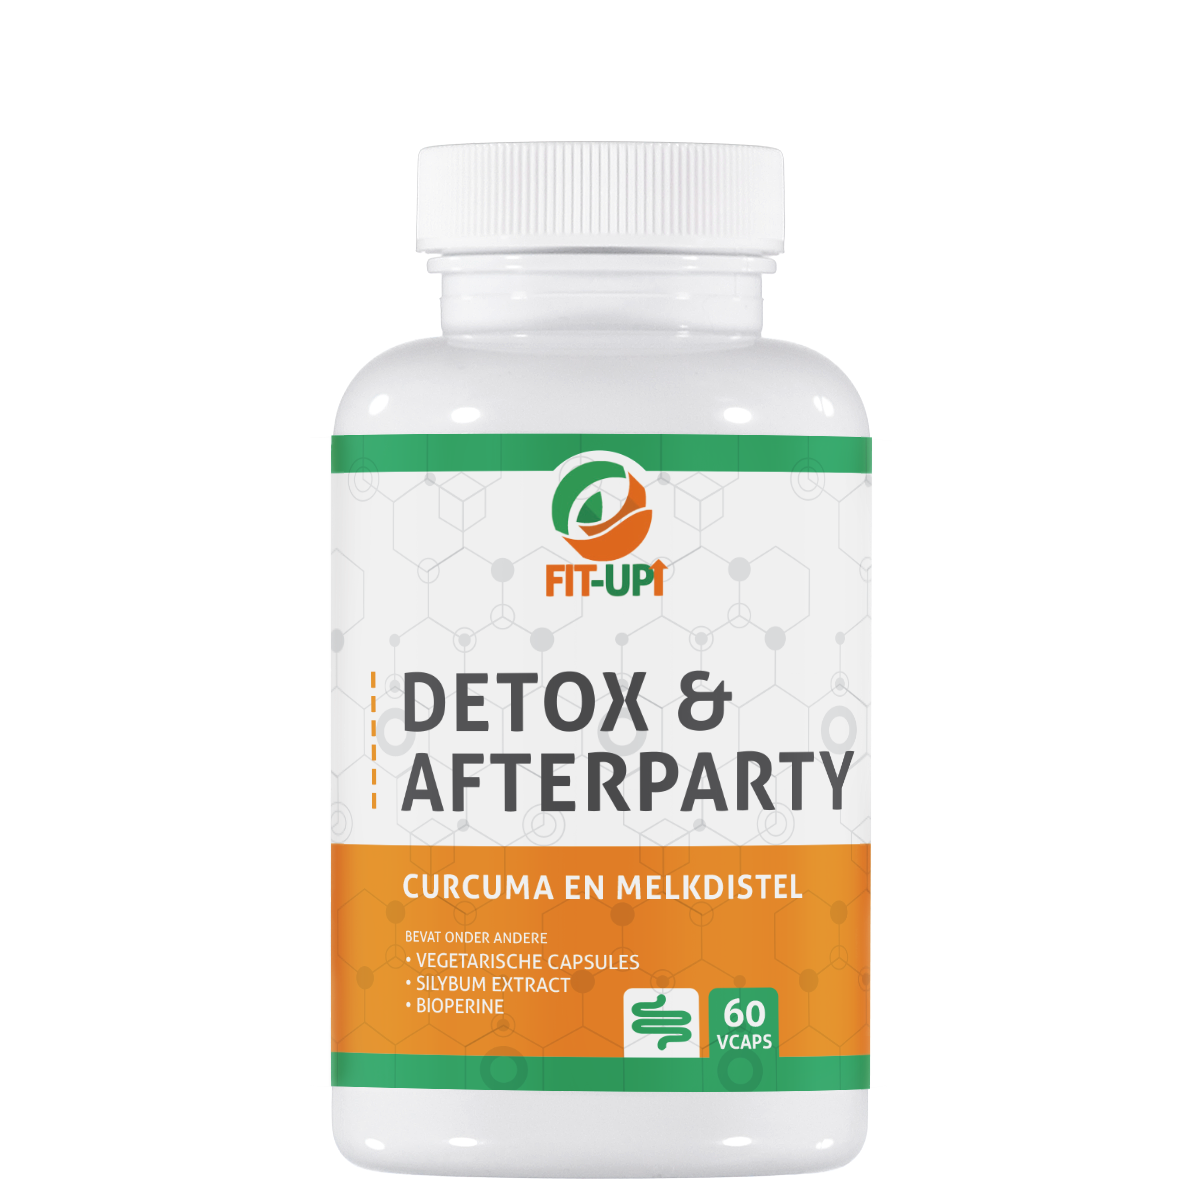 Detox and afterparty - 60 capsules